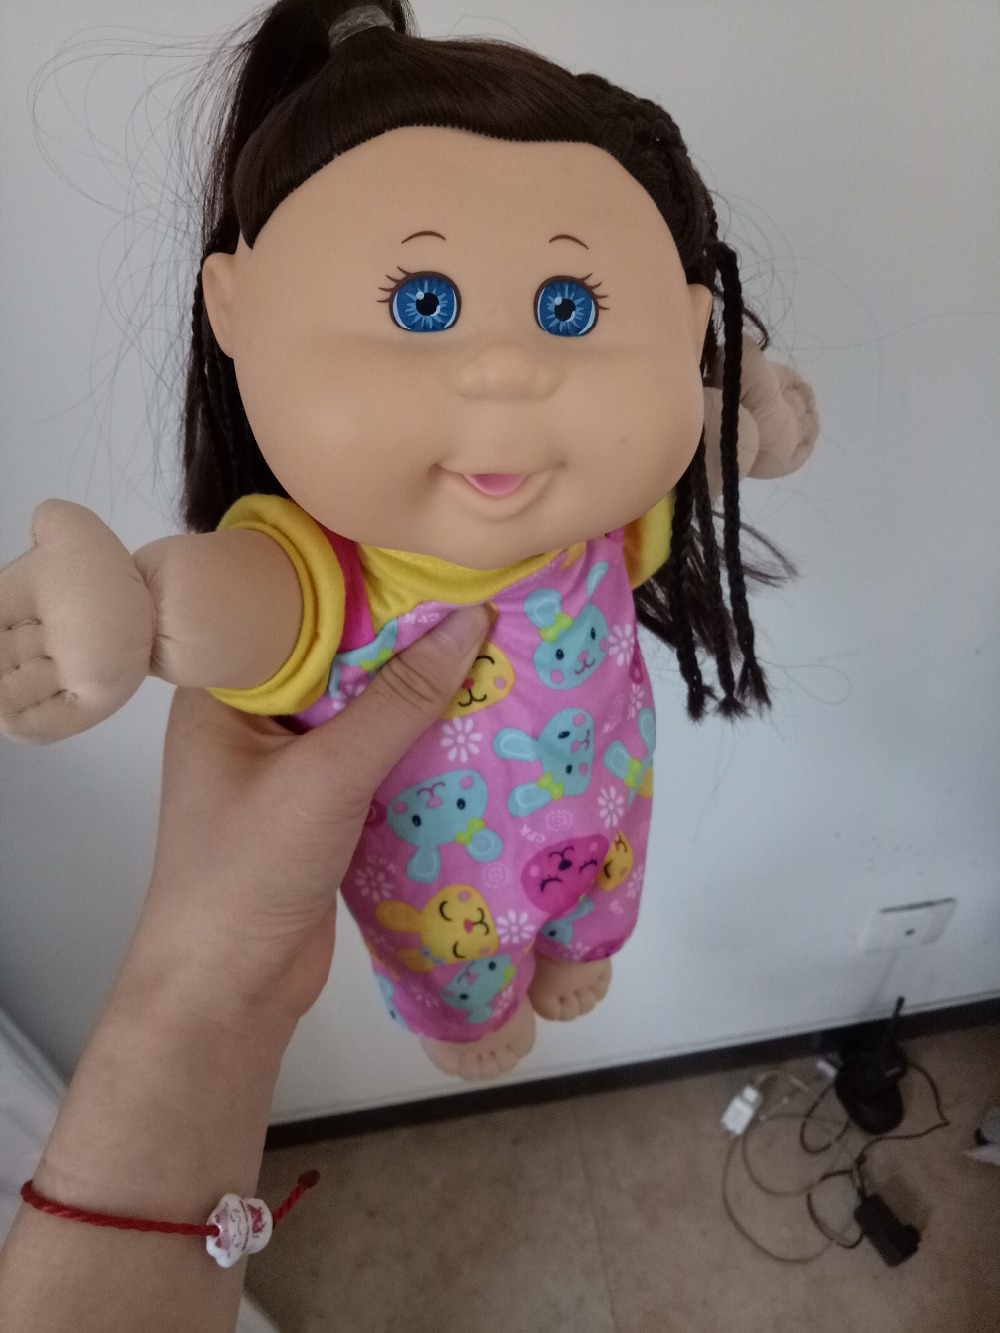 New Arrival Rare Cabbage Patch Kids Appease Accompany